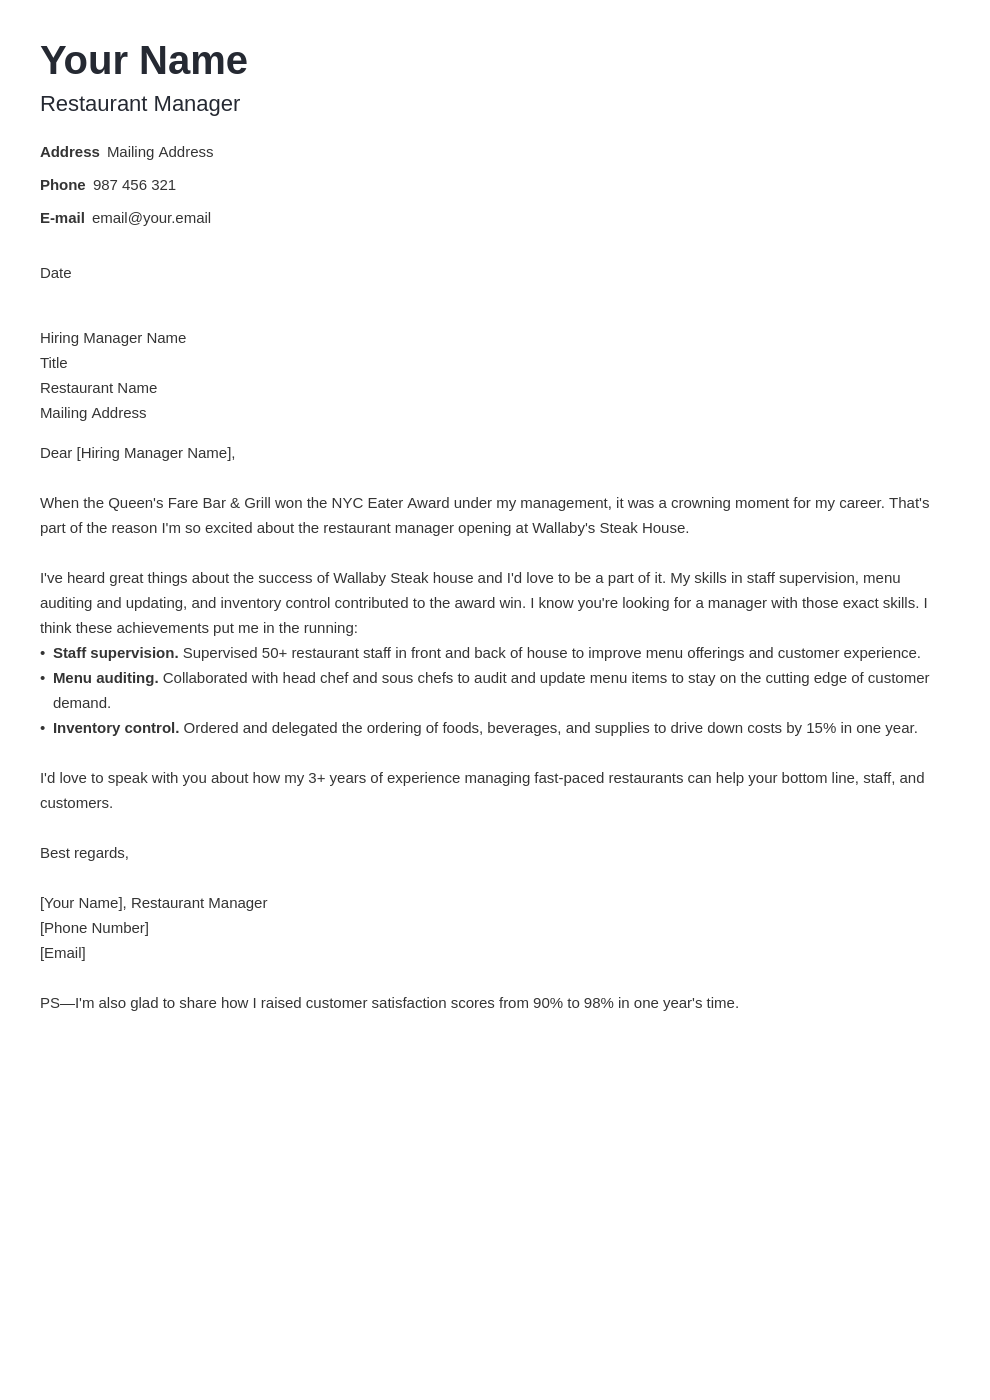 cover letter examples restaurant manager template newcast uk